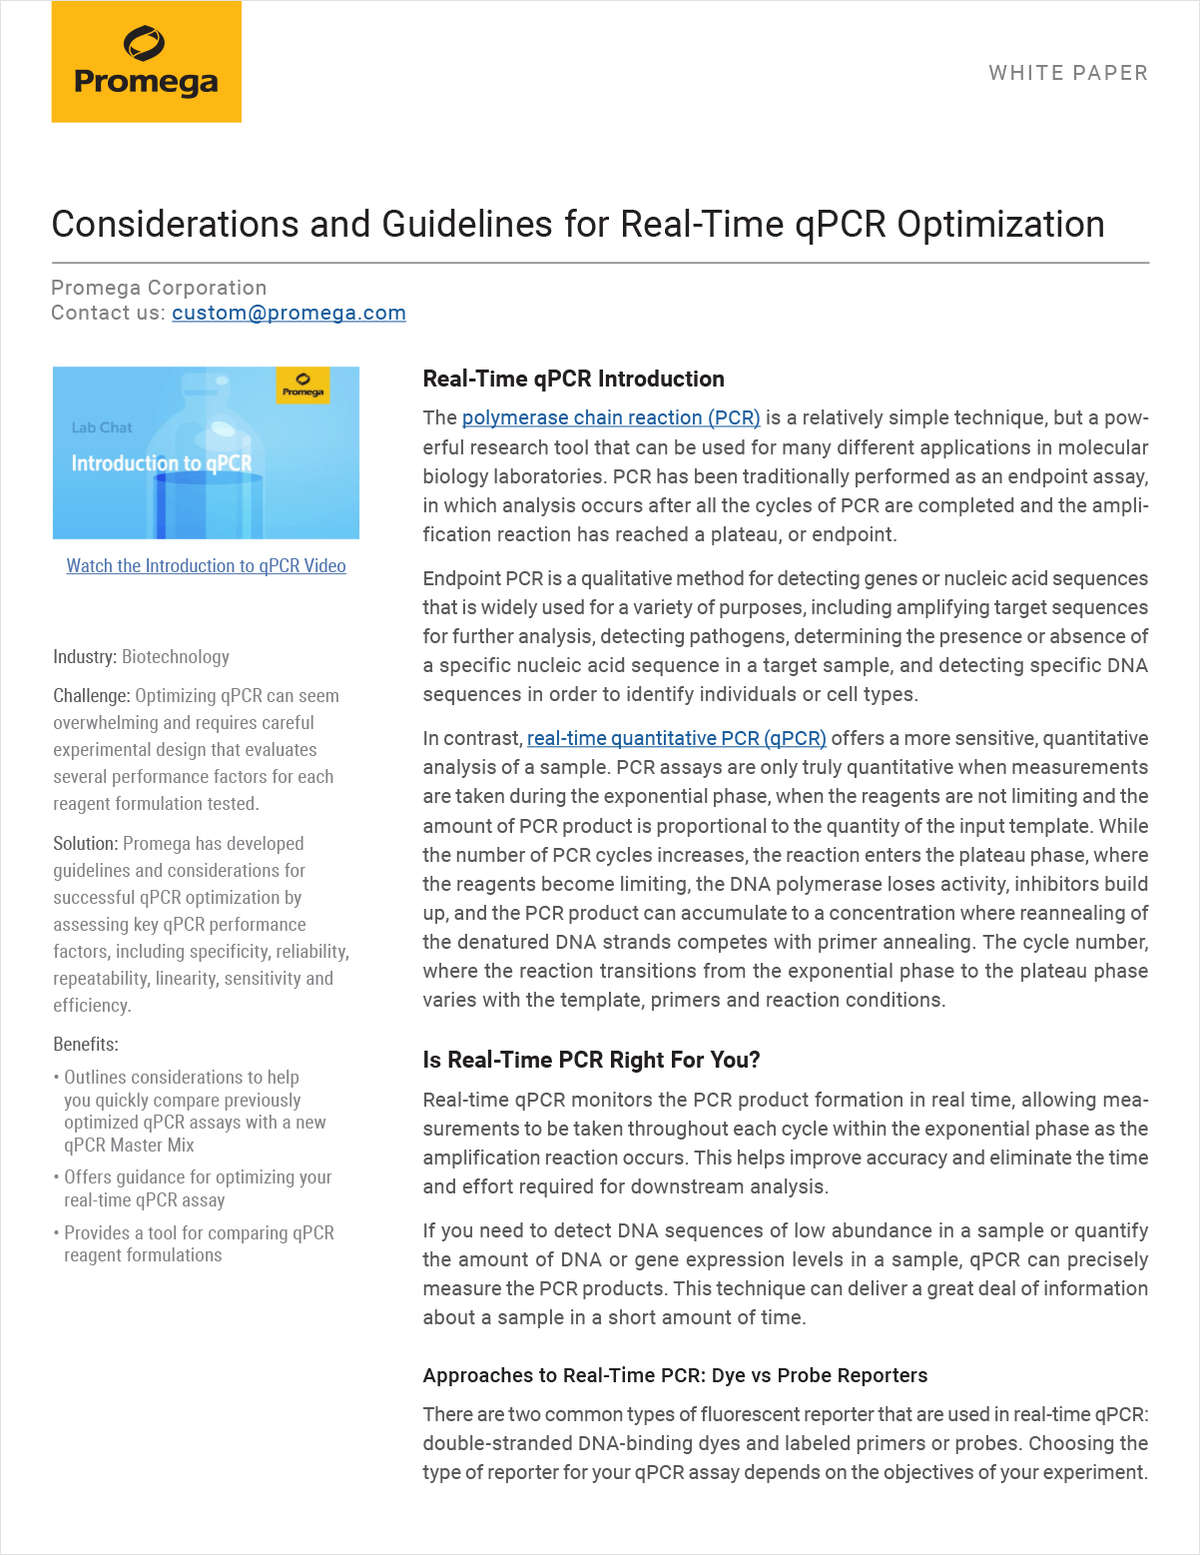 Considerations and Guidelines for Real-Time qPCR Optimization